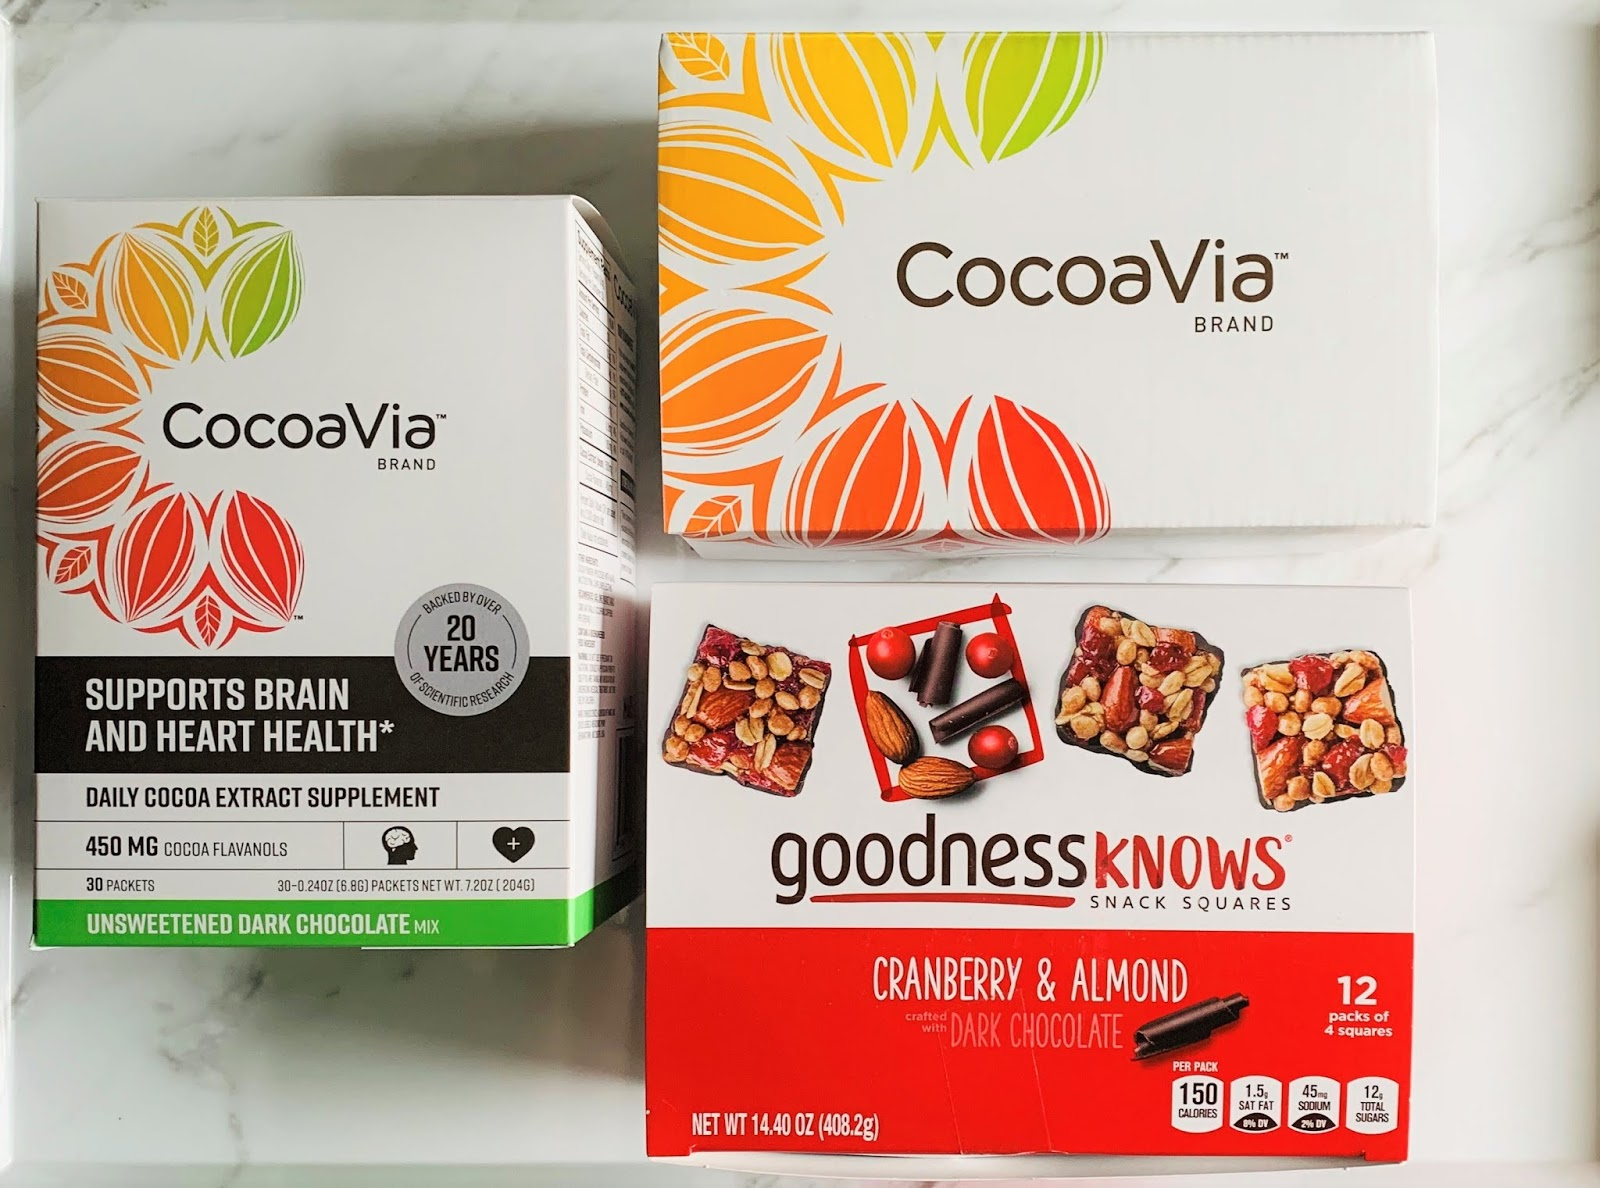 CocoaVia™products I received for review